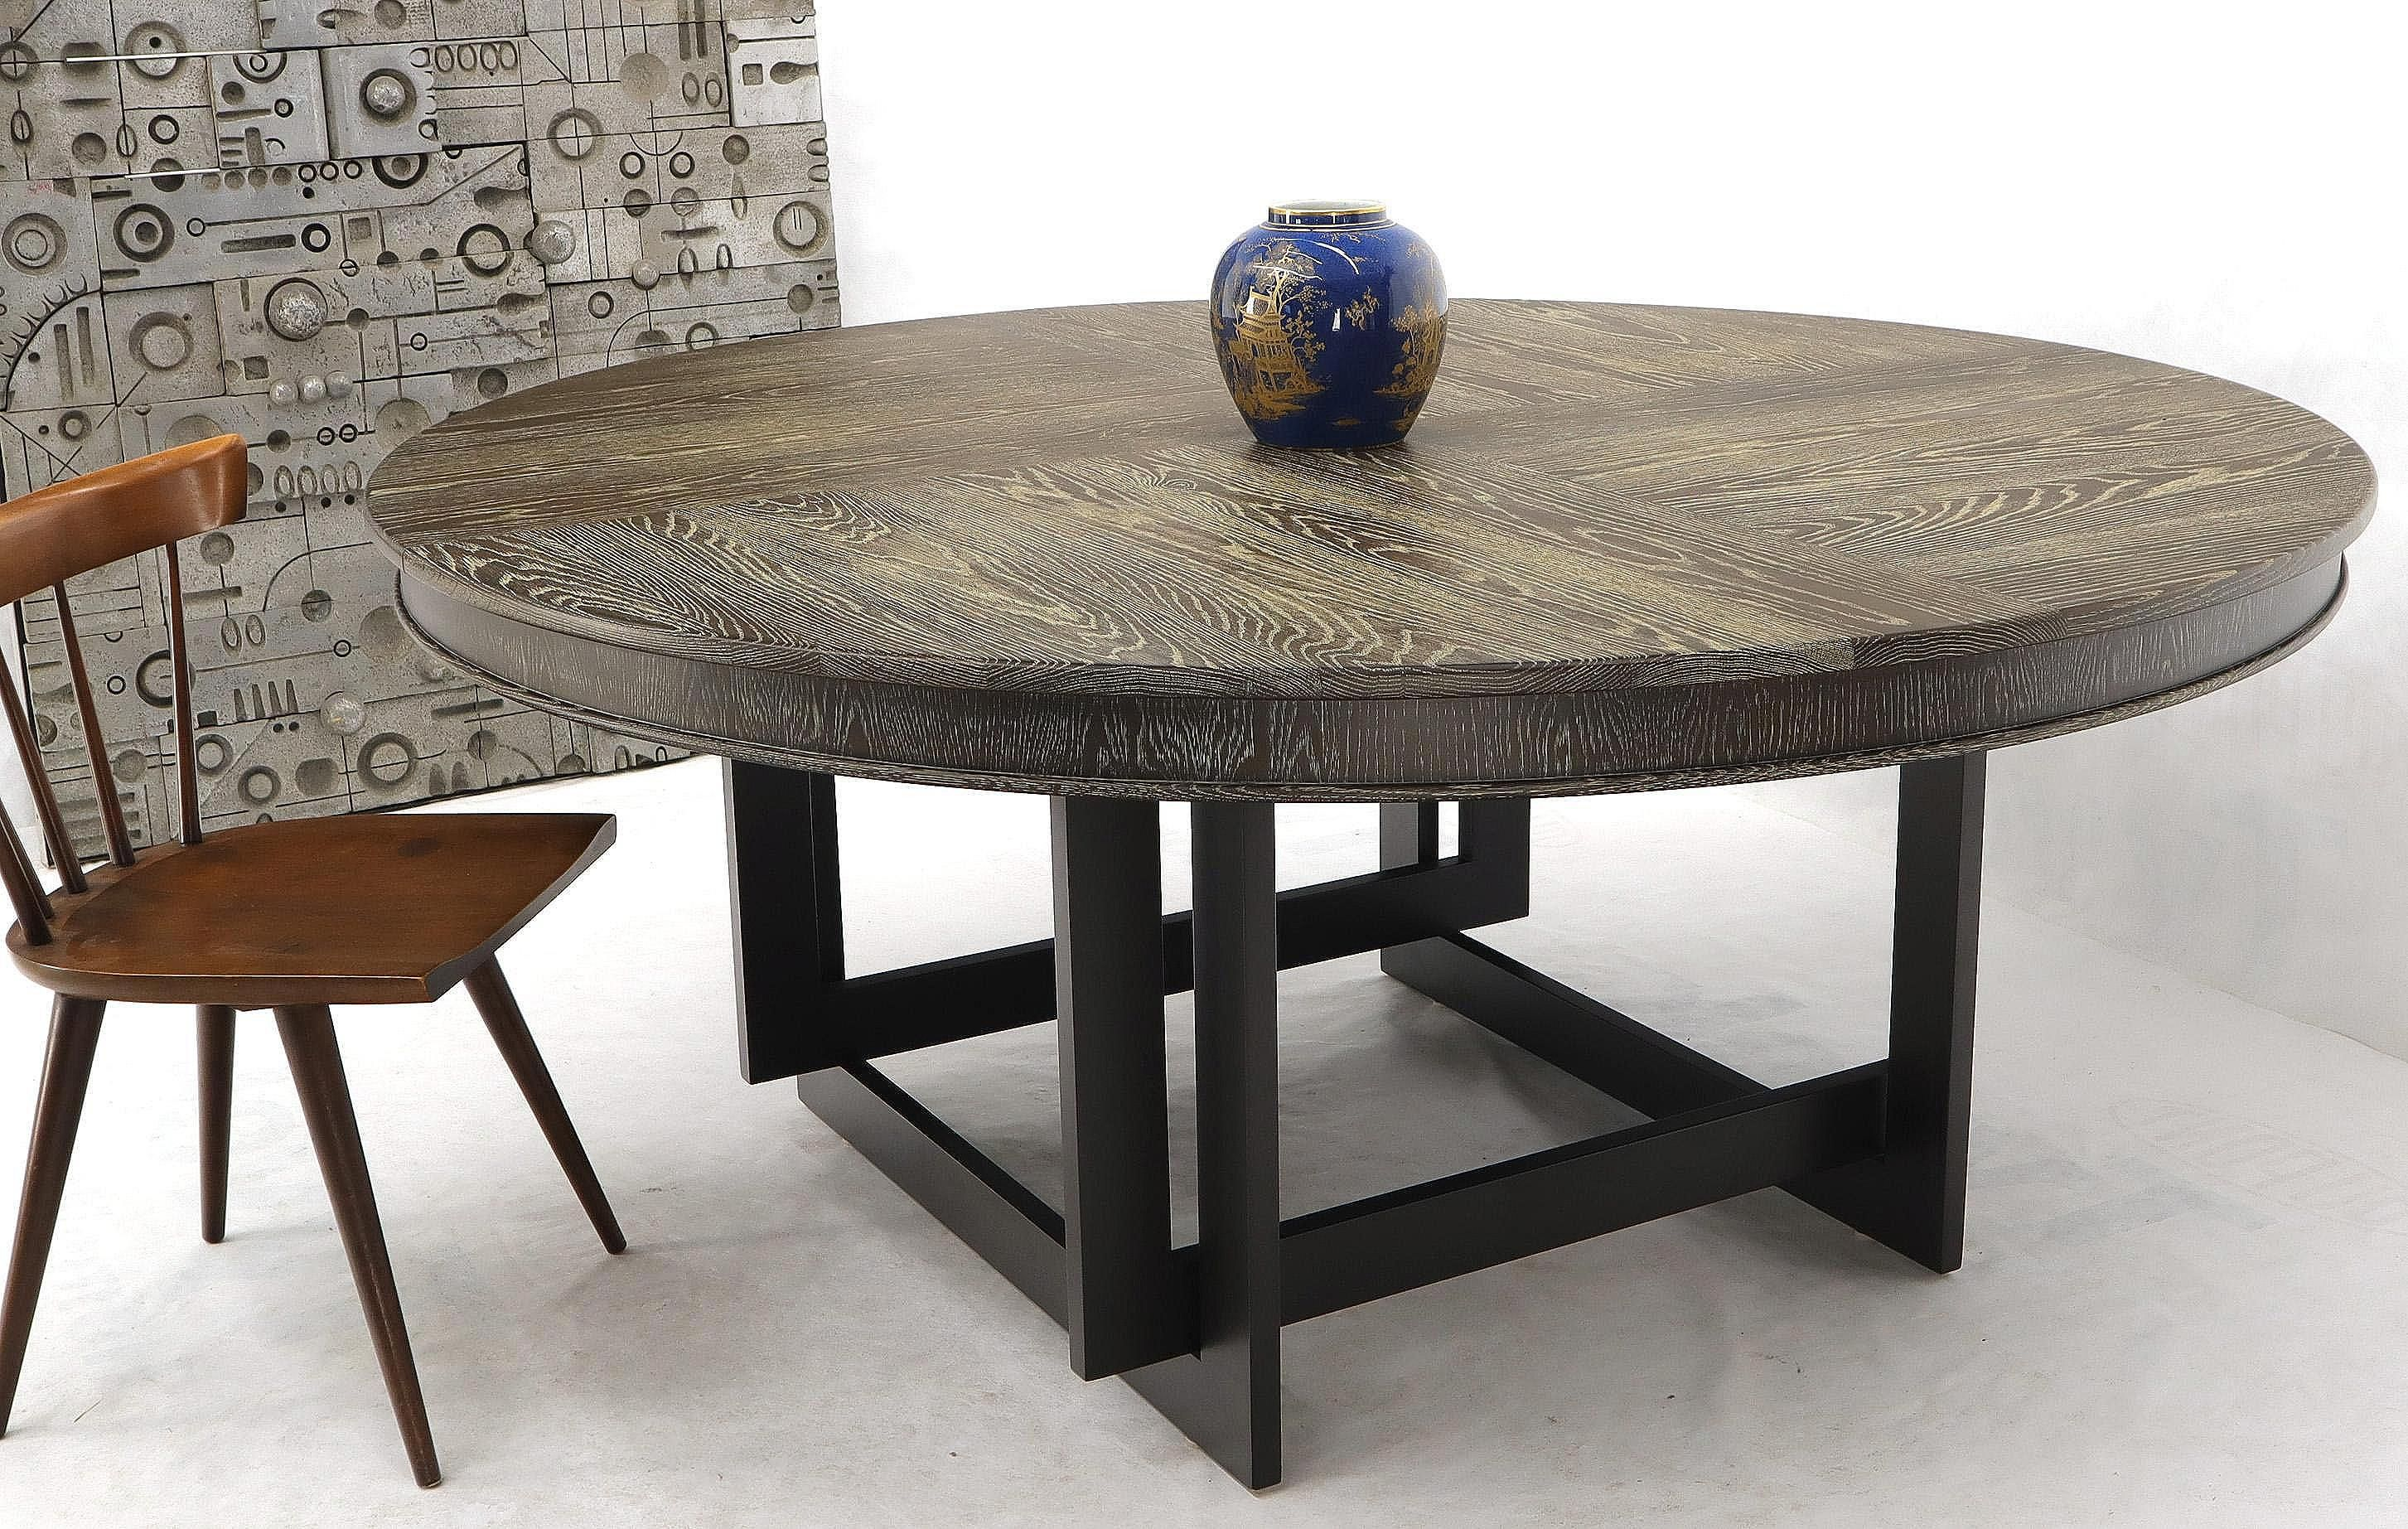 Best Of Round Kitchen Table With Leaf Round Dining Room Table Big Dining Room Tables Dining Room Table